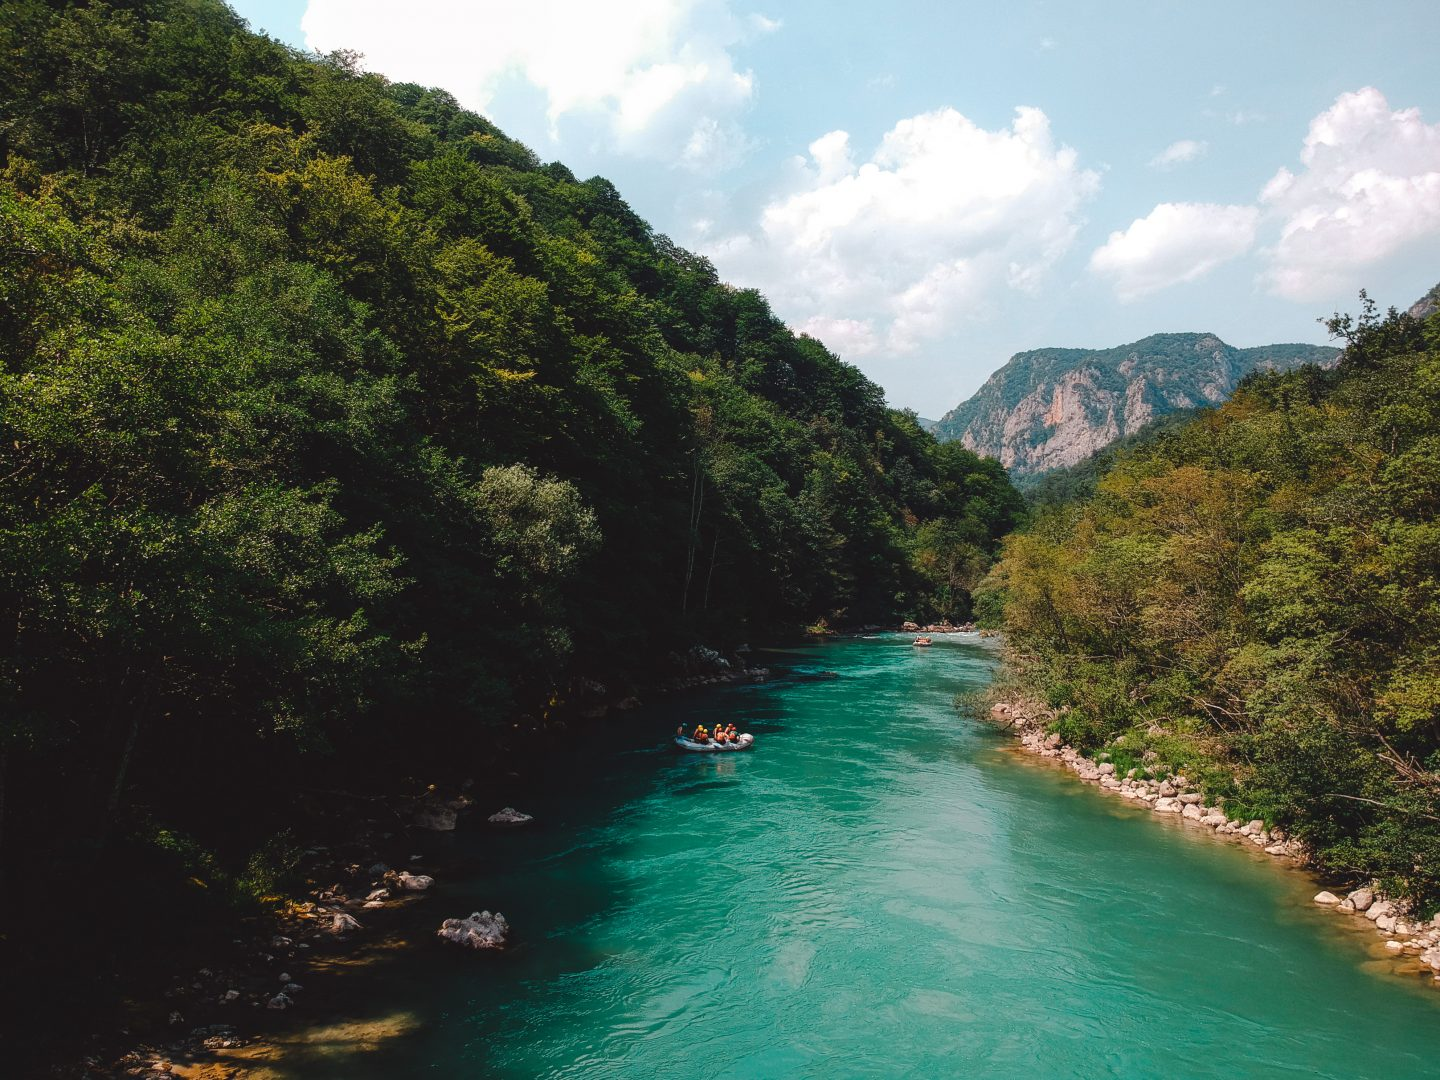 Stop at the Tara river on our holidays through the Balkans